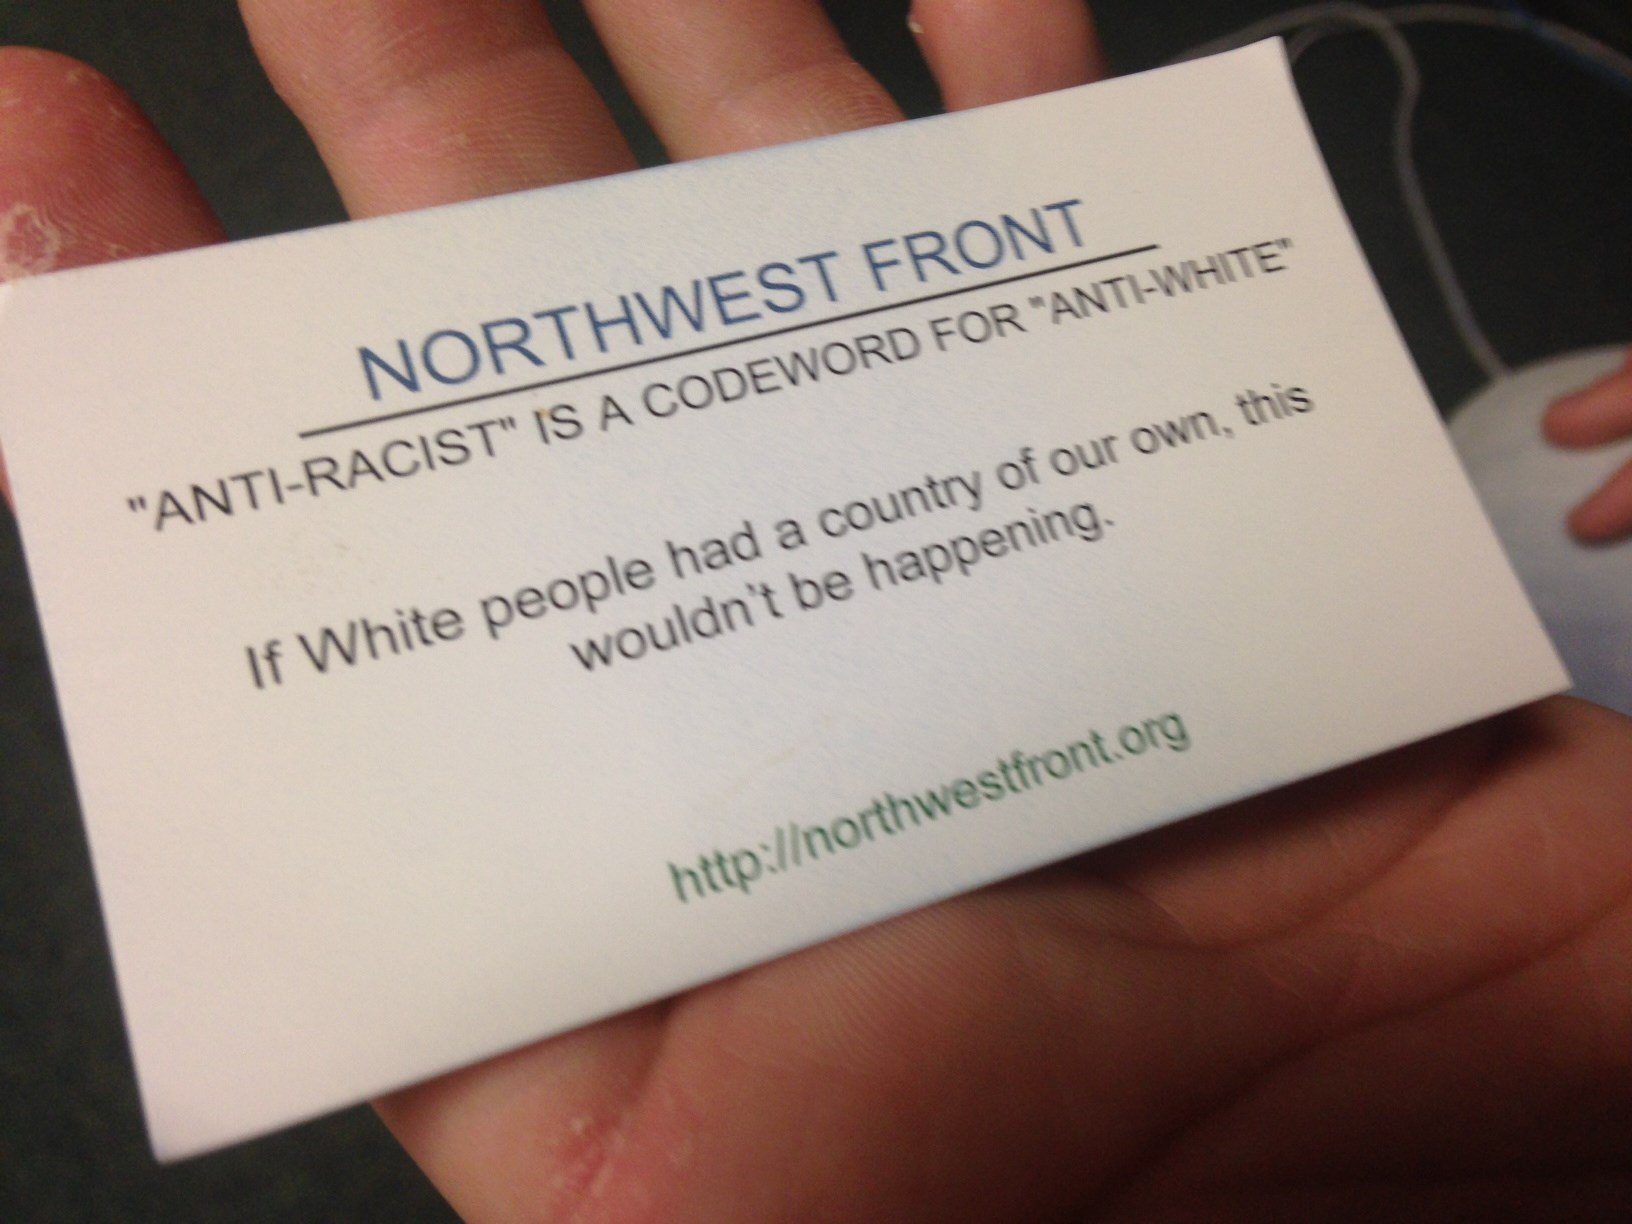 A Greenville County man says he received this business card for Northwest Front in the mail. (Oct. 2, 2014/FOX Carolina)